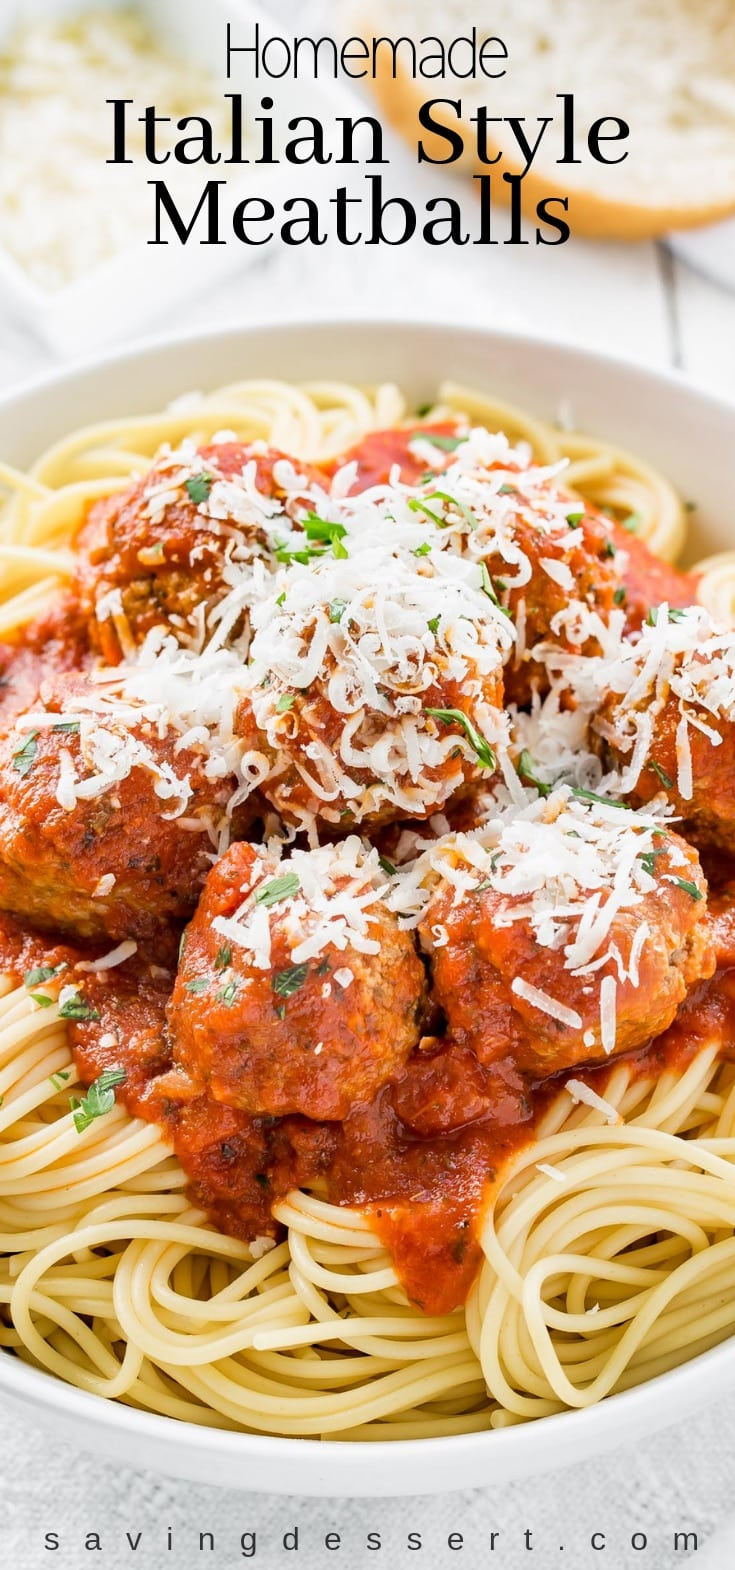 A great Italian Meatball Recipe! They're juicy, tender and delicious, with easy make-ahead and freezable directions too! #meatballs #italianmeatballs #italianmeatballrecipe #italian #spaghettimeatballs #dinner #freezable